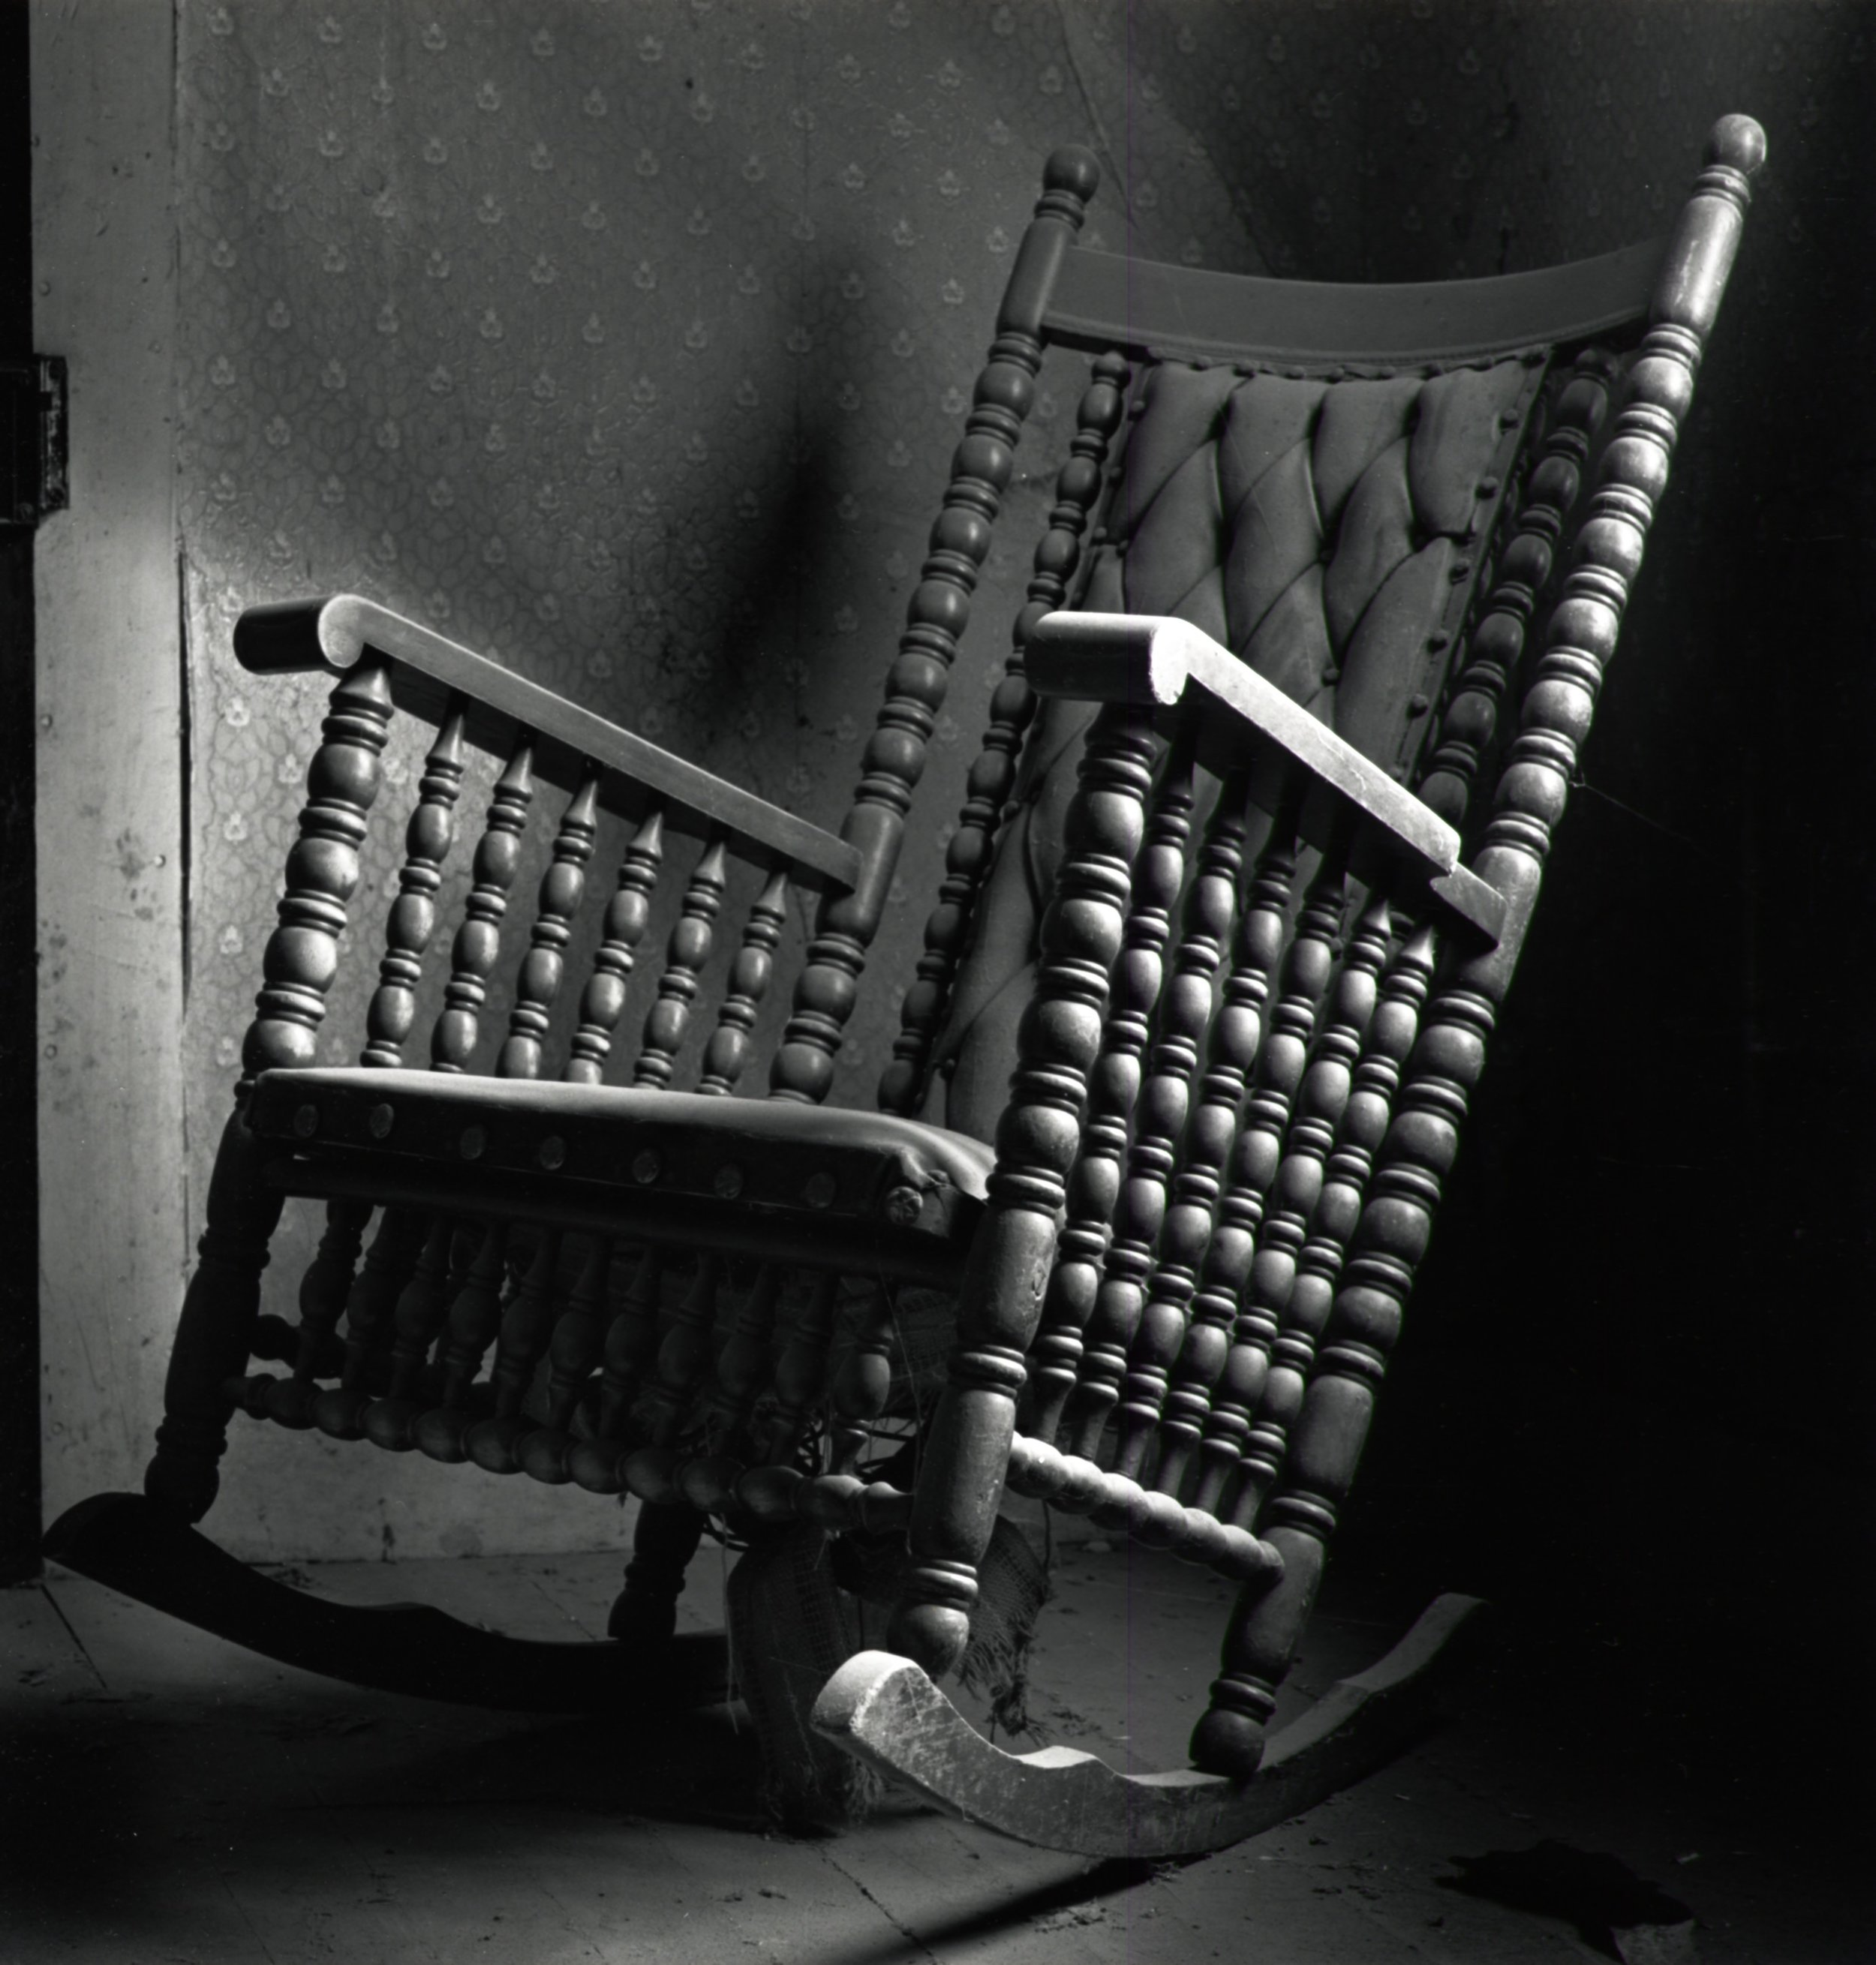 Rocking Chair - Bodie CA 1993